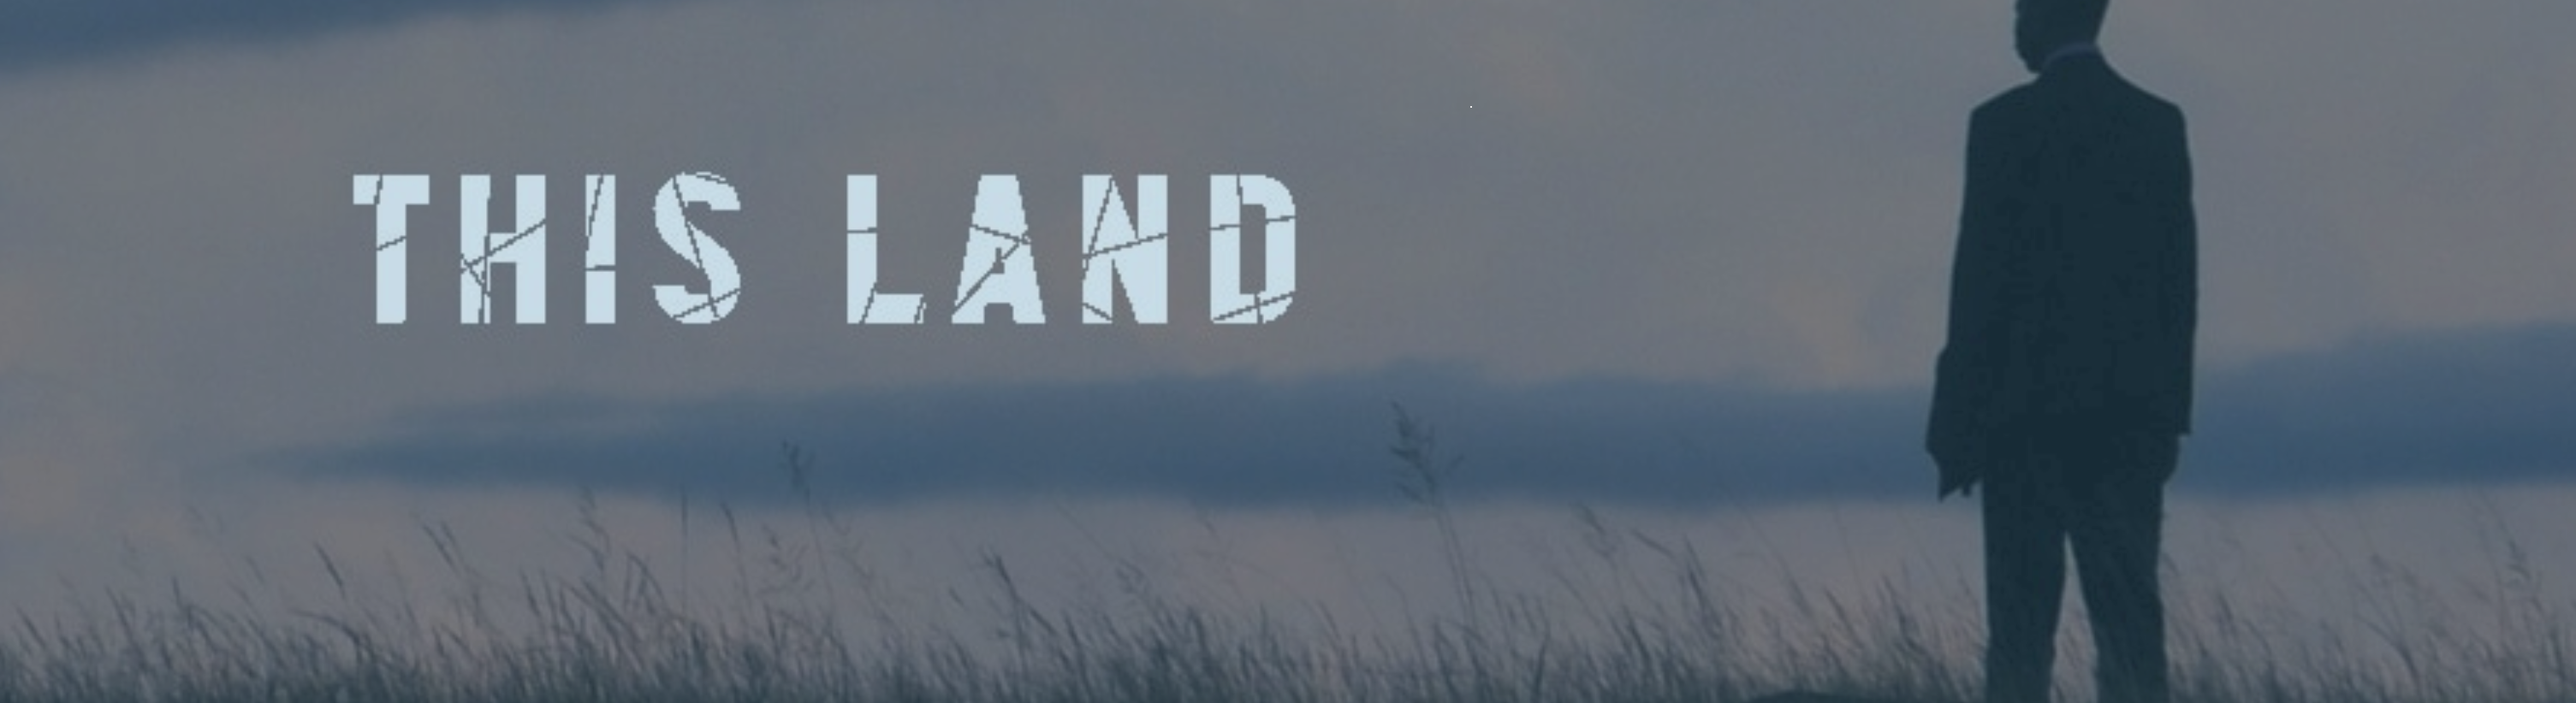 This Land Documentary Image